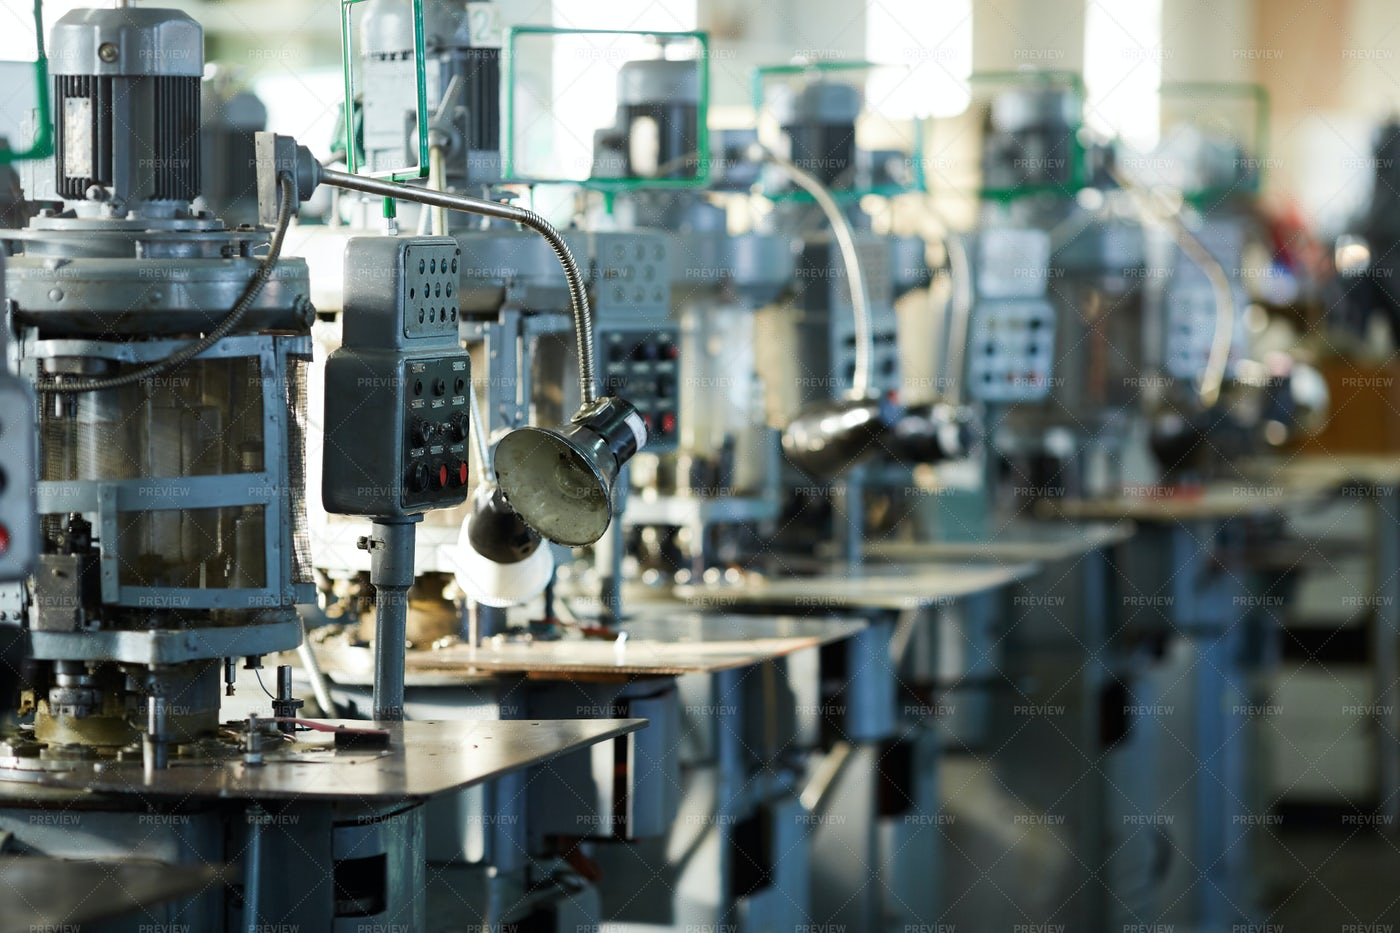 Industrial Machine Units In Row: Stock Photos